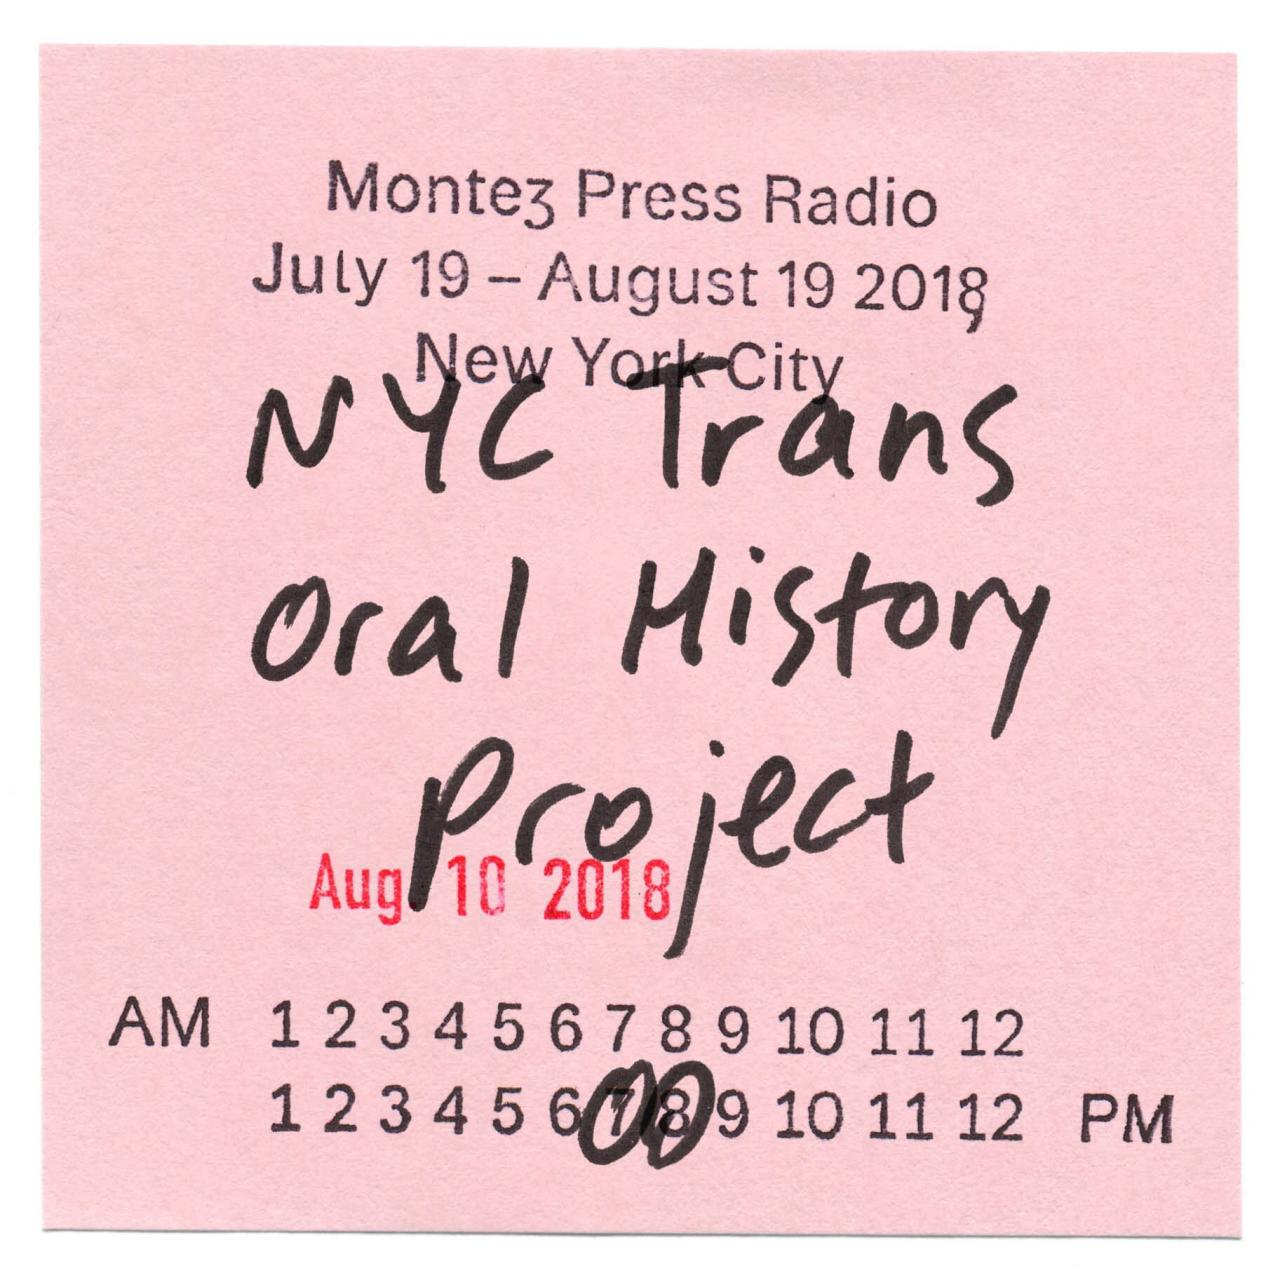 Flyer for Montez Press Radio